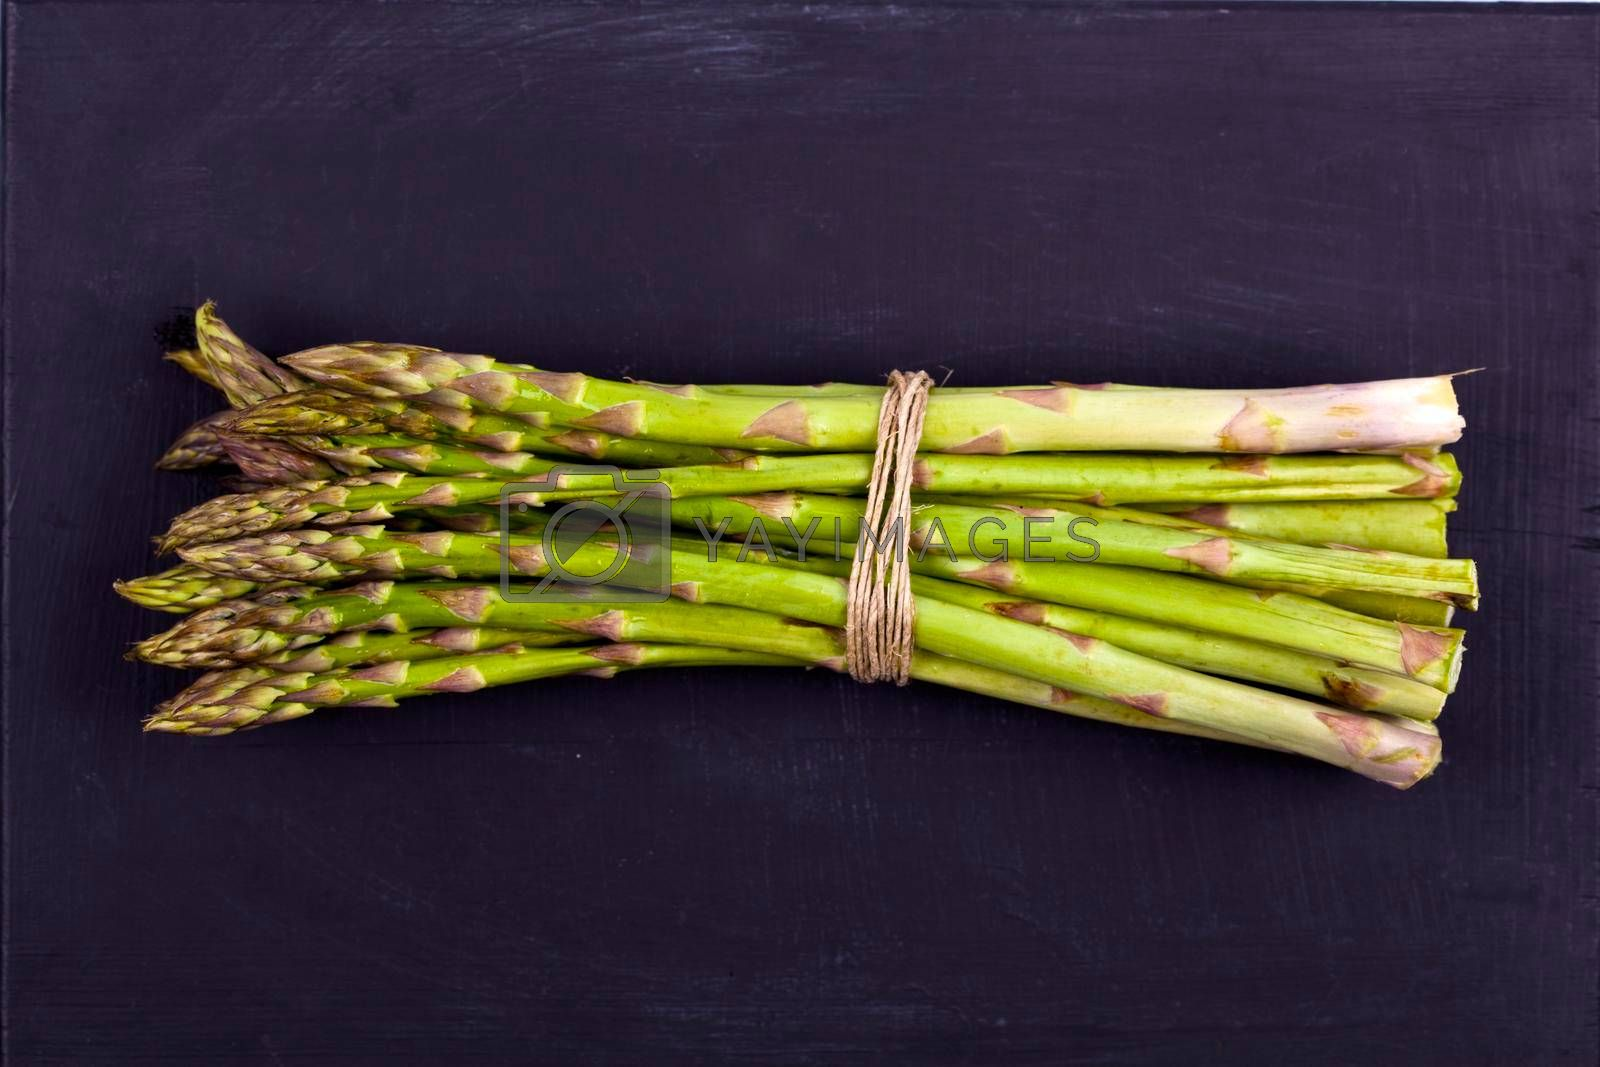 Bunch of fresh raw garden asparagus on black board background. Green spring vegetables.Top view of edible sprouts of asparagus.